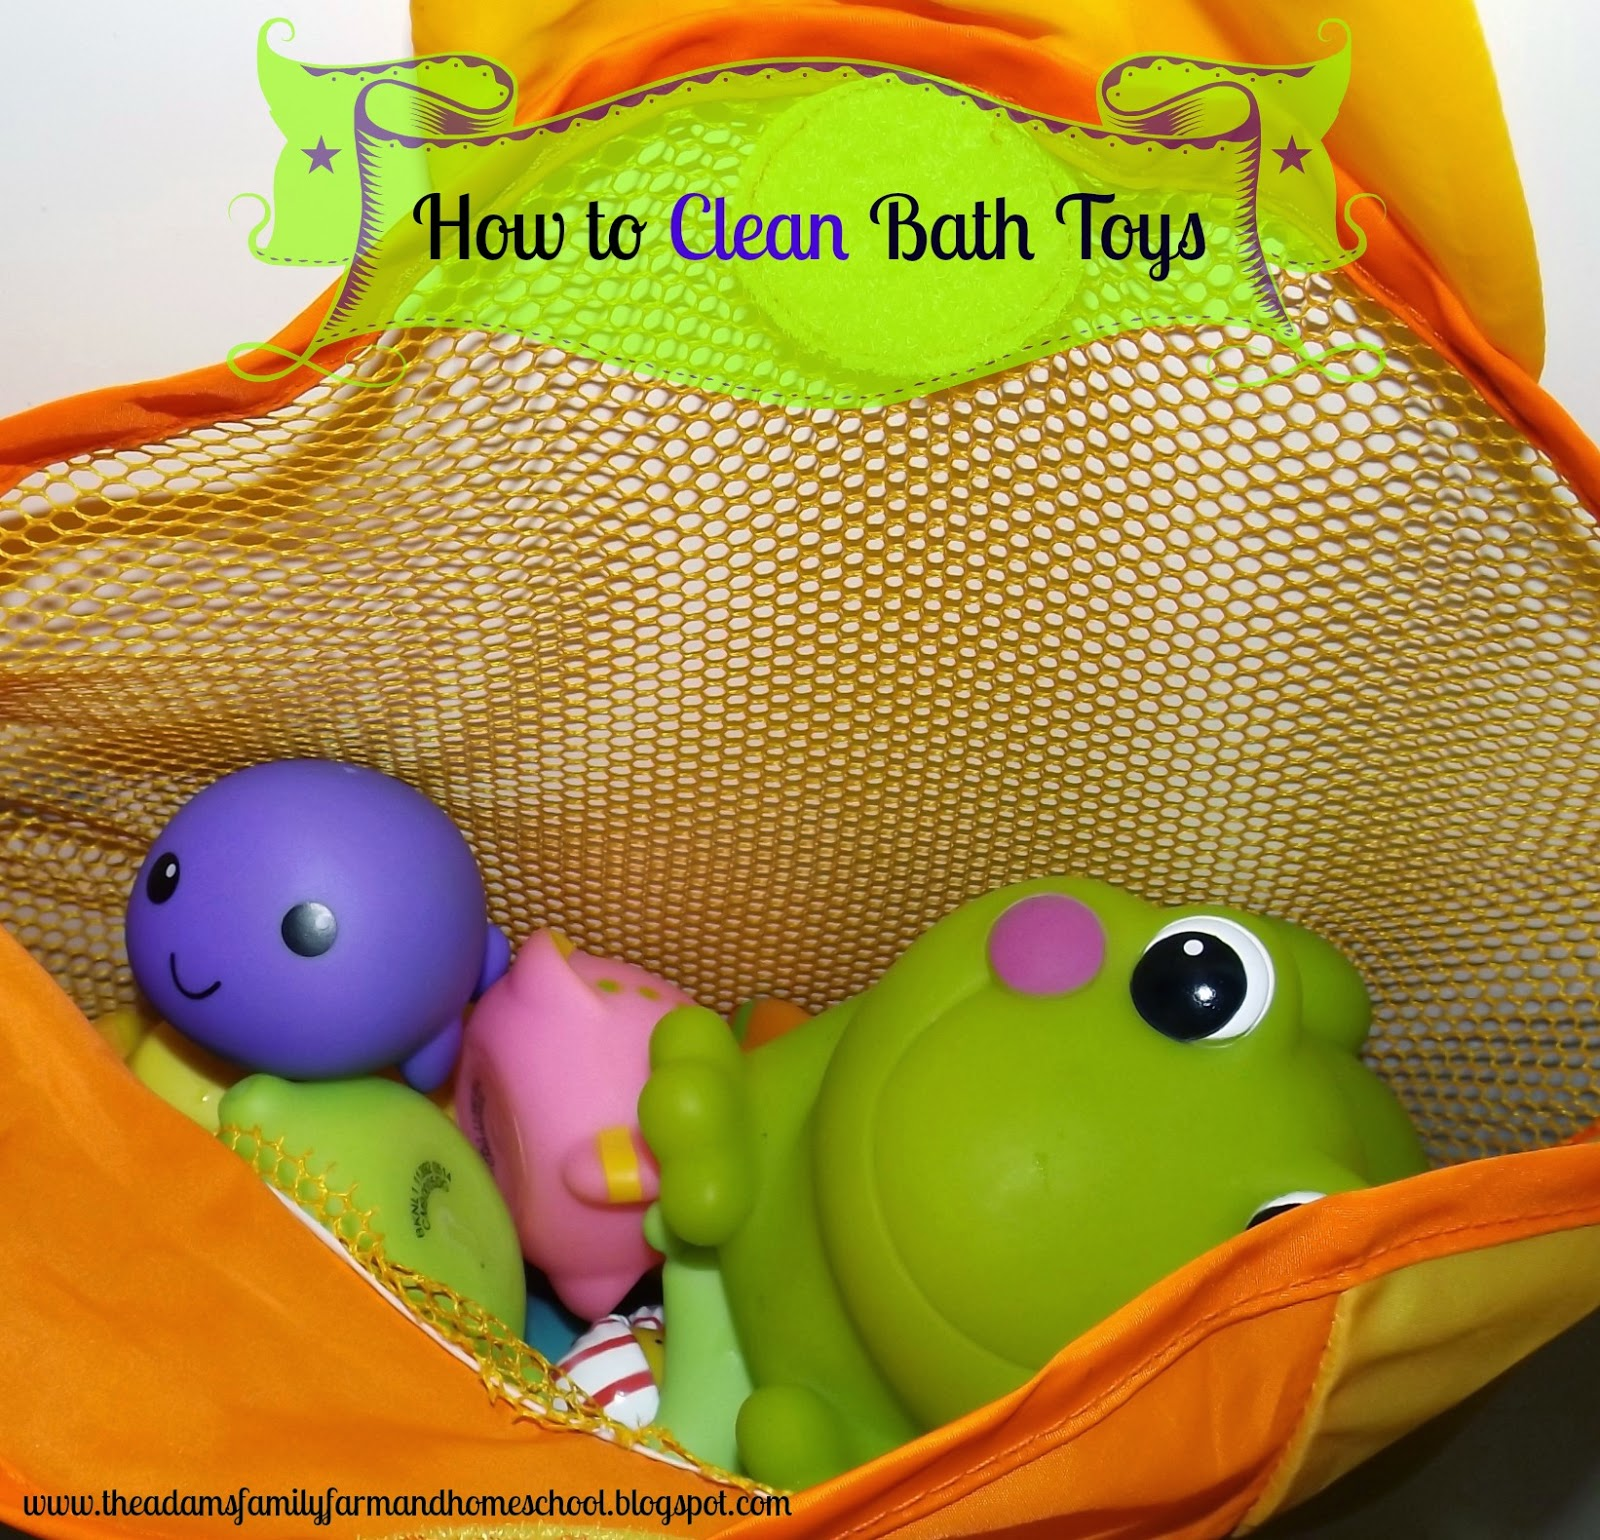 Bath toys in a mesh bath toy holder